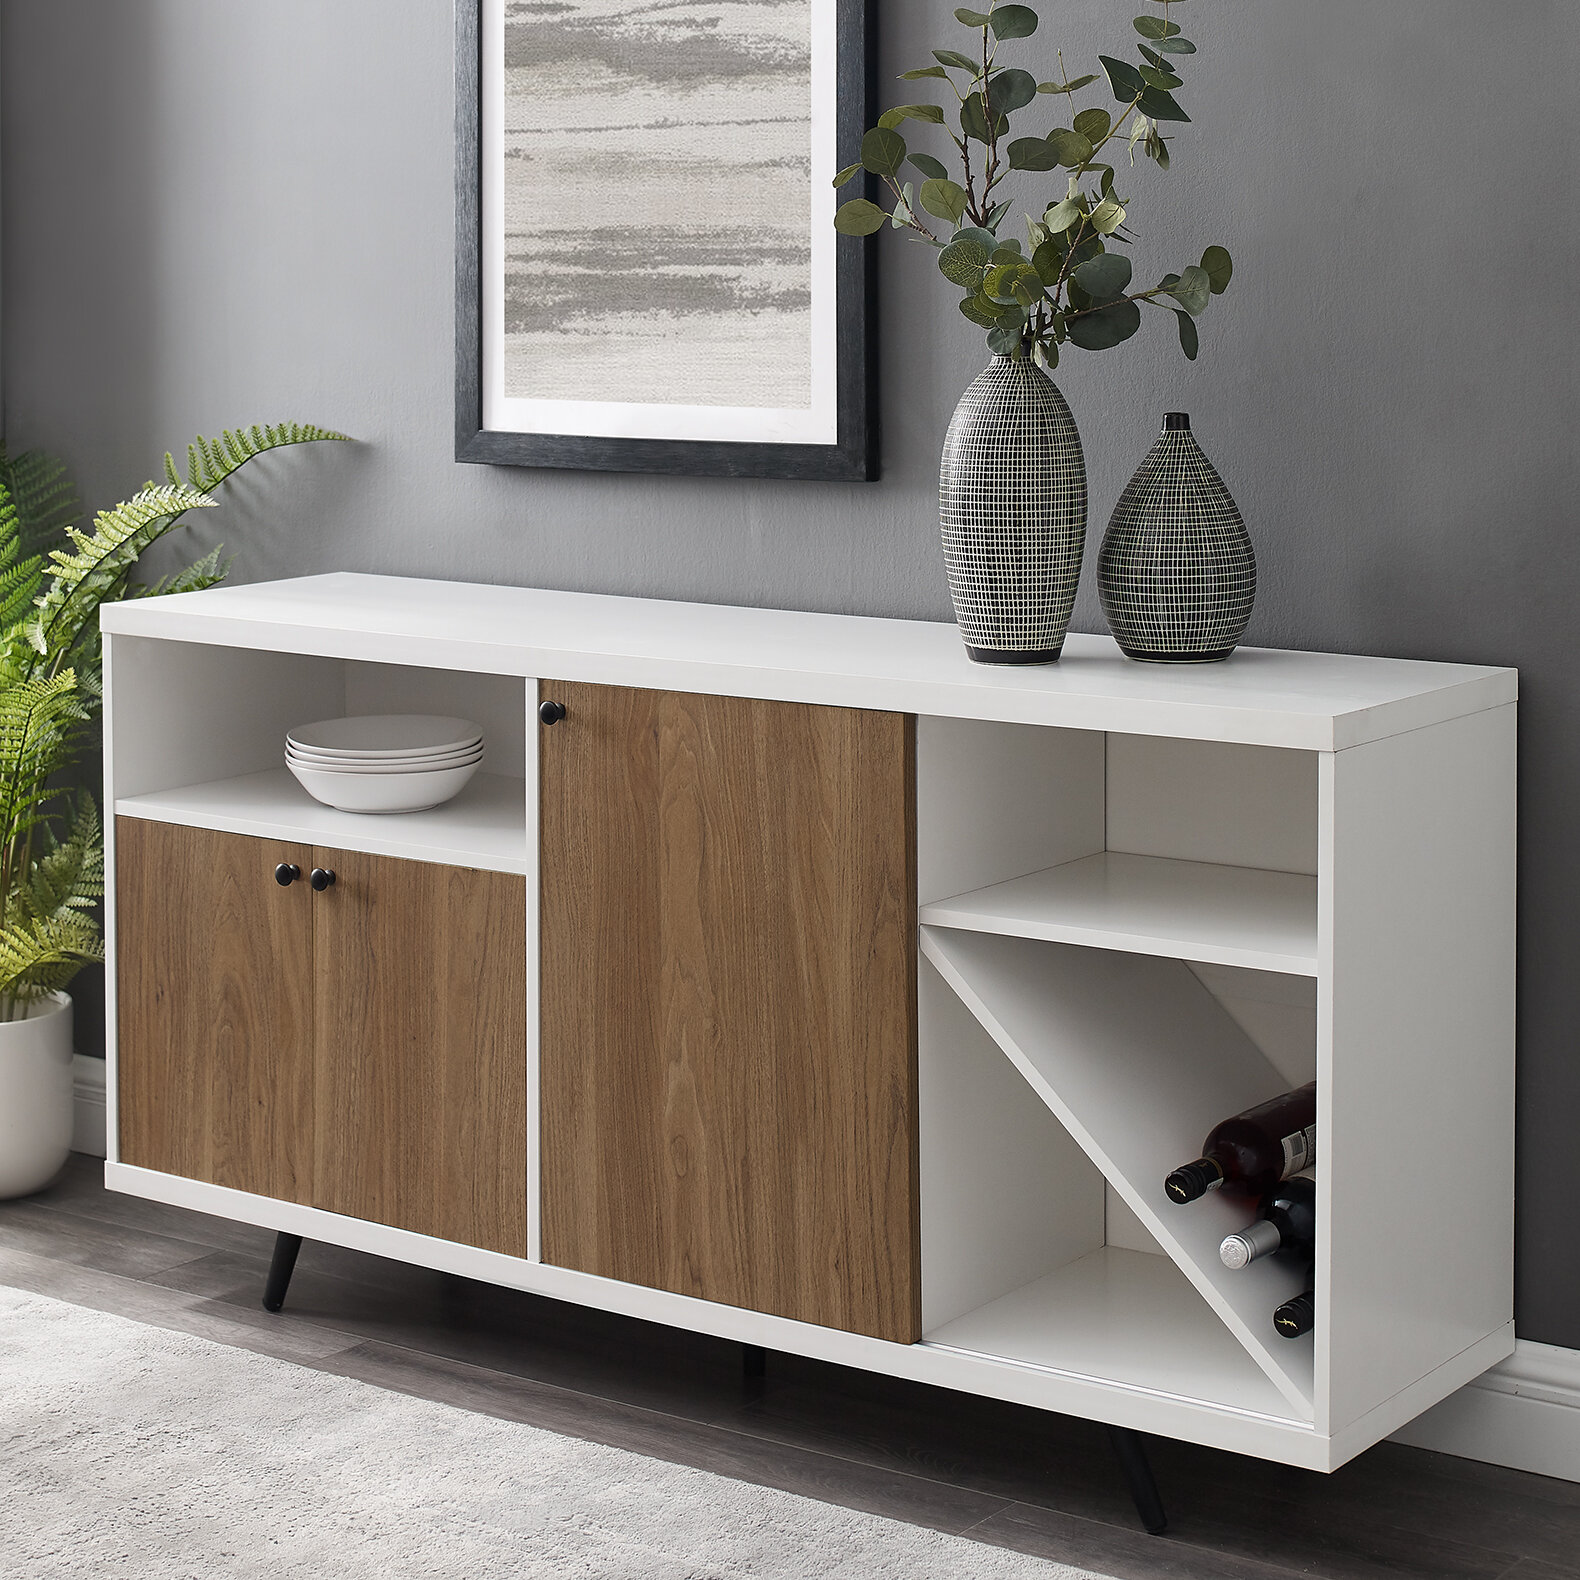 Wine Bottle Storage Equipped Sideboards Buffets You Ll Love In 2020 Wayfair